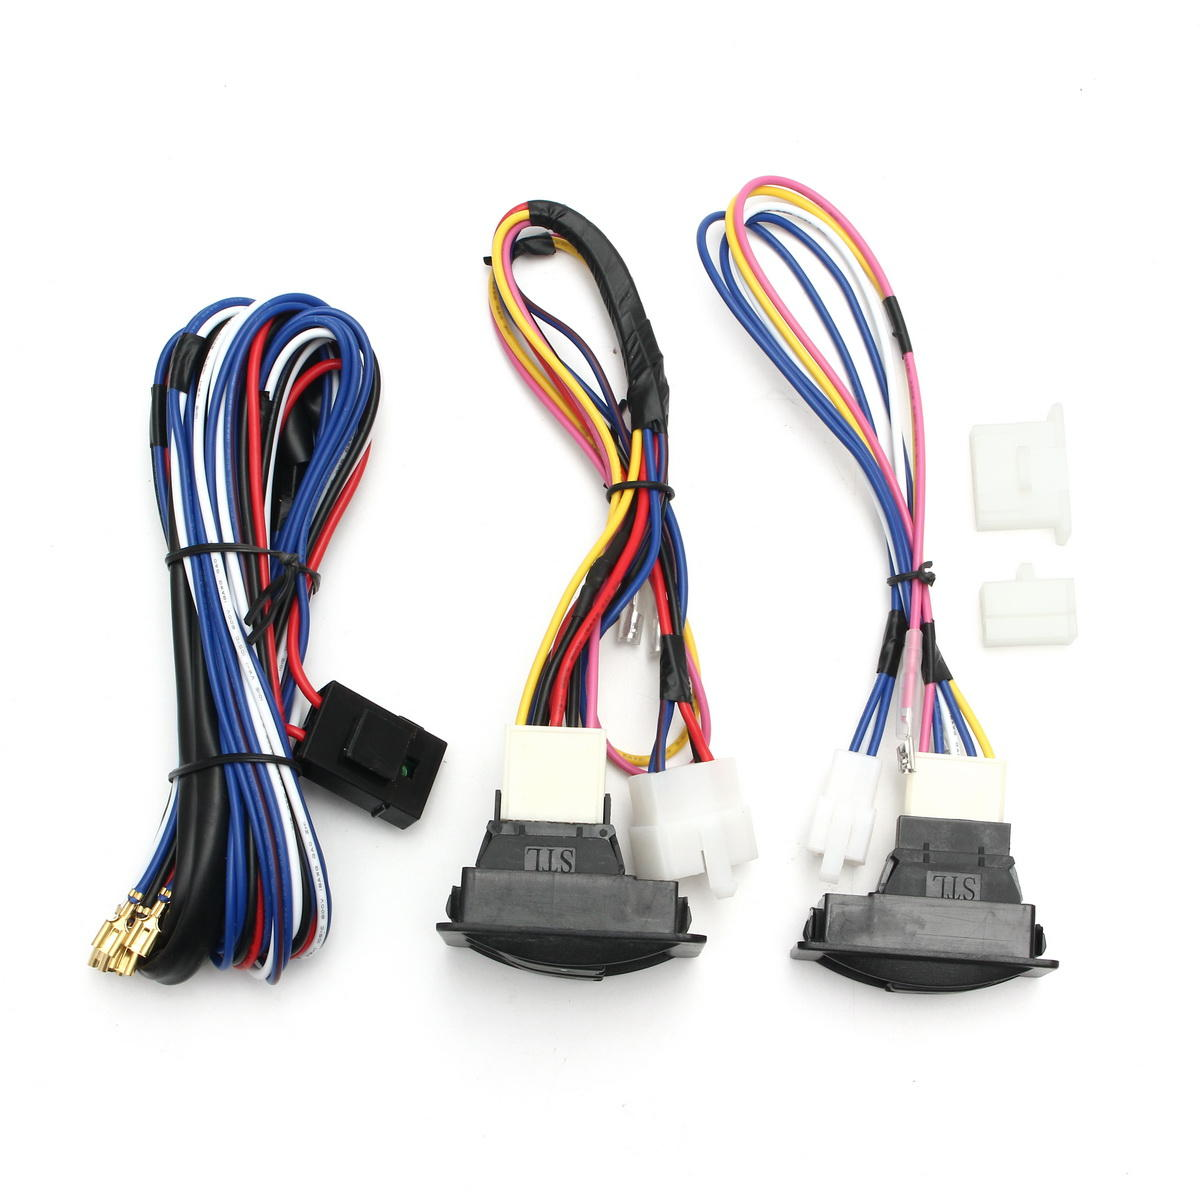 hight resolution of 6pcs 12v universal power window switch kits with installation wiring wiring harness power windows